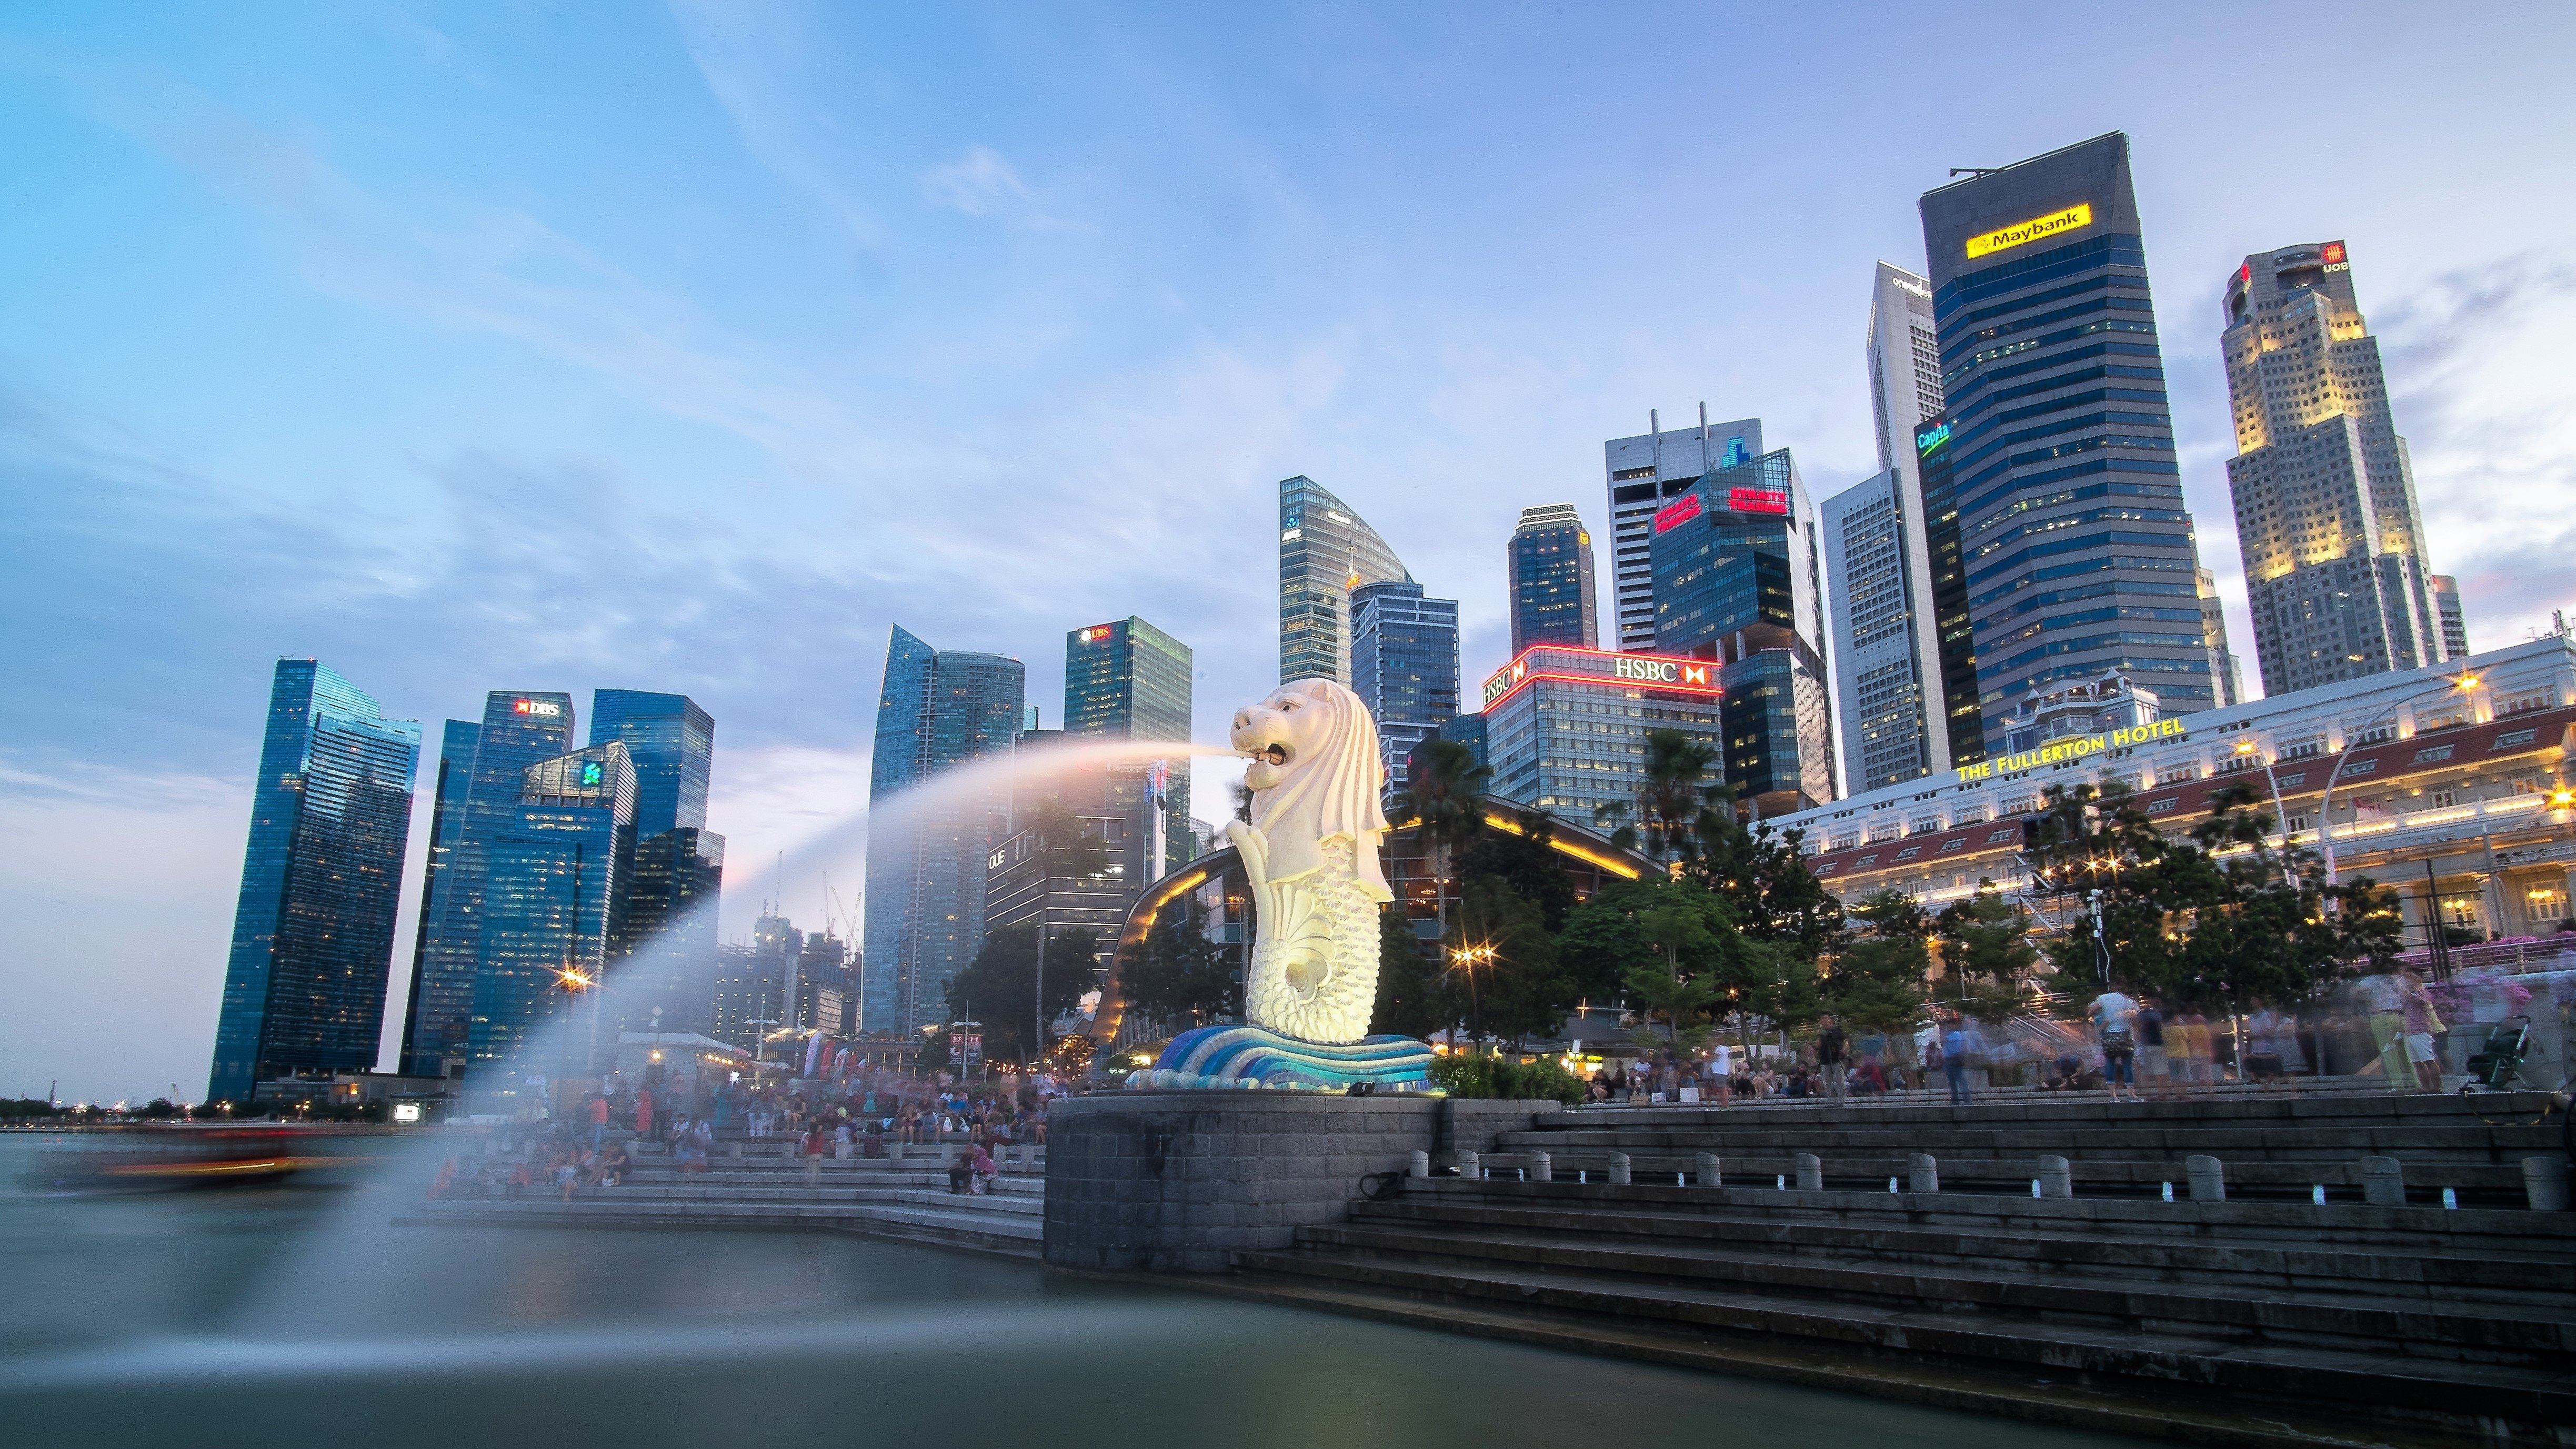 Singapore's Merlion and Central Business District